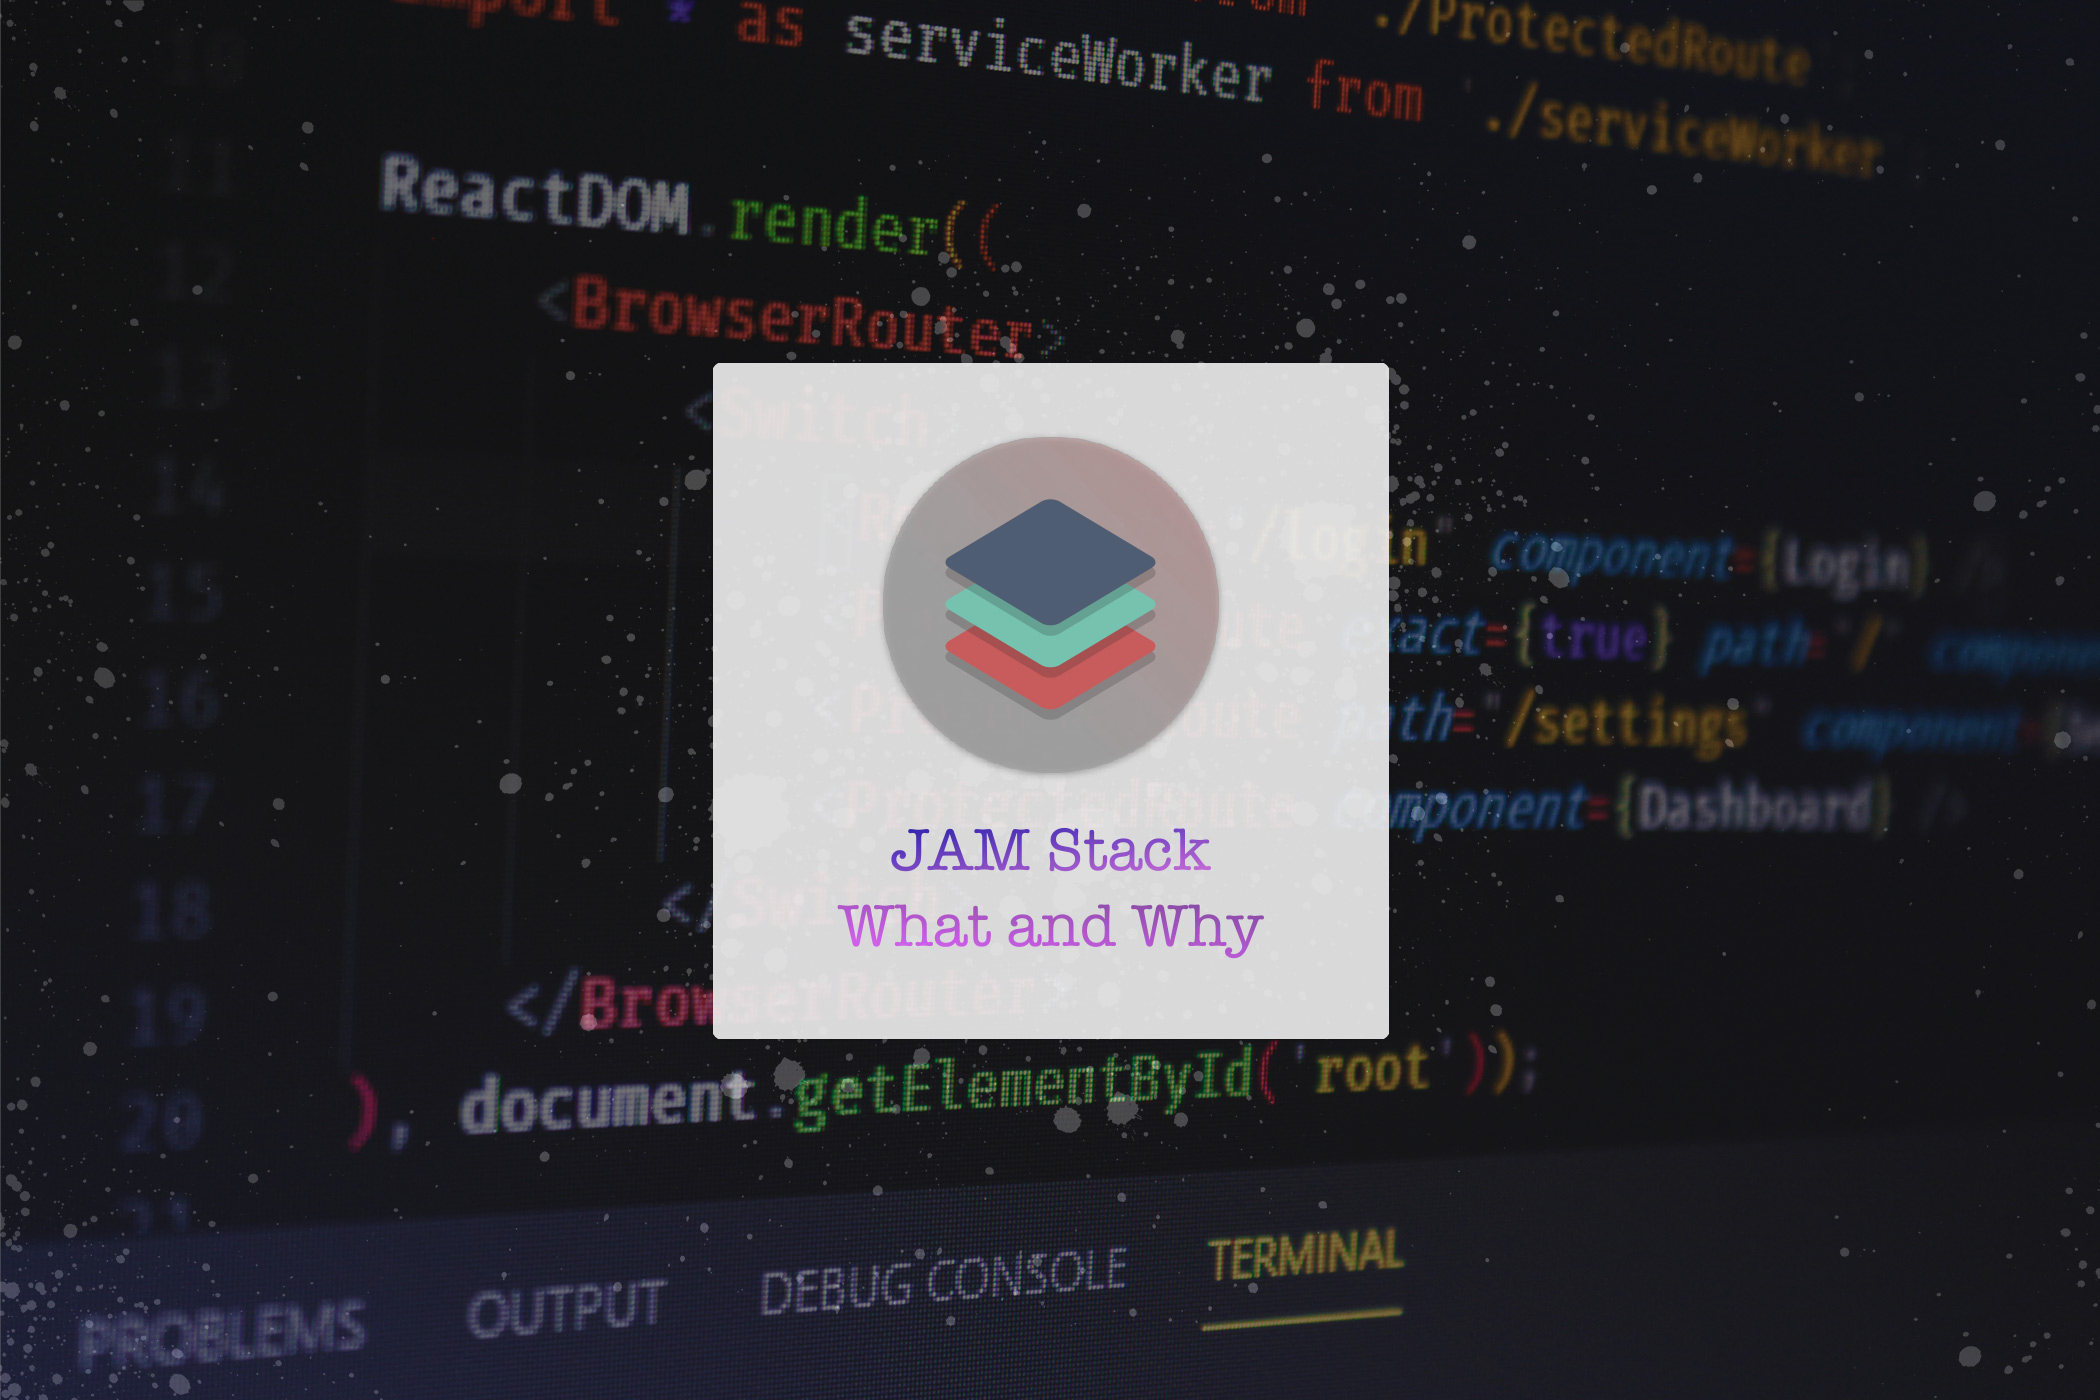 /welcome-to-the-jamstack-ucp3ugx feature image